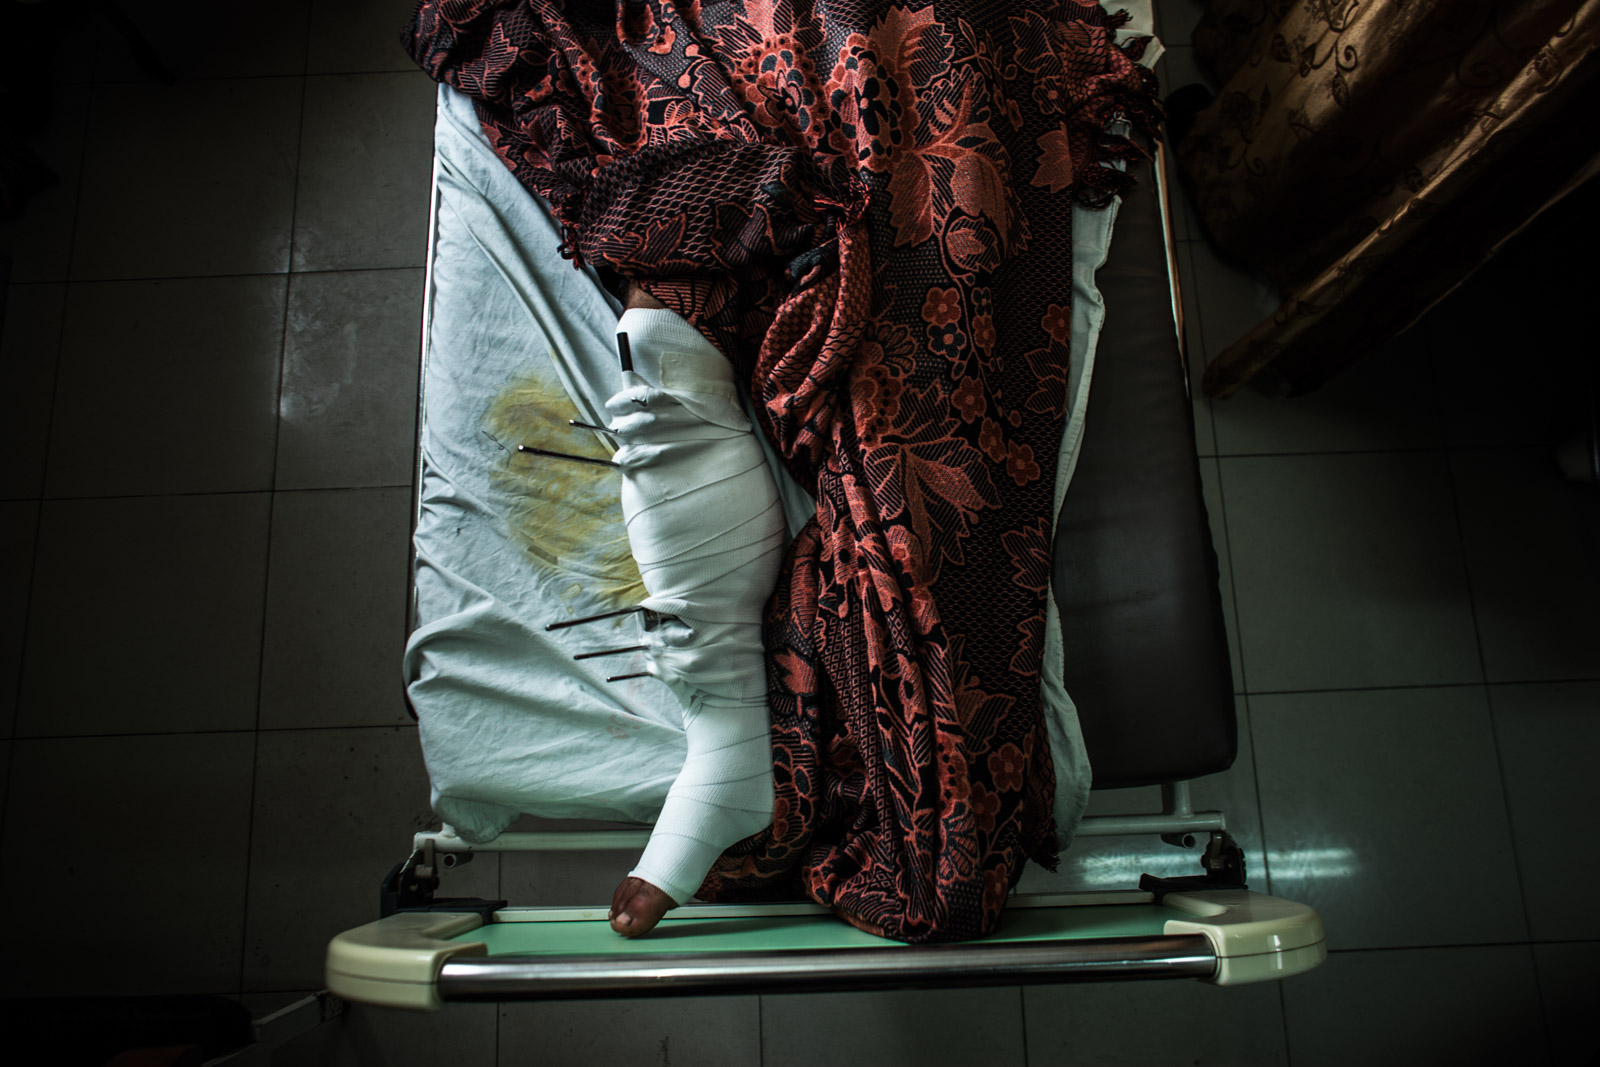 Gaza City, Gaza - December 4, 2012: Leg of an injured Palestinian hospitalized in Shifa hospital in Gaza City. Between 20 and 25 percent of non-lethal injuries related to bombings and air strikes result in limb amputation.